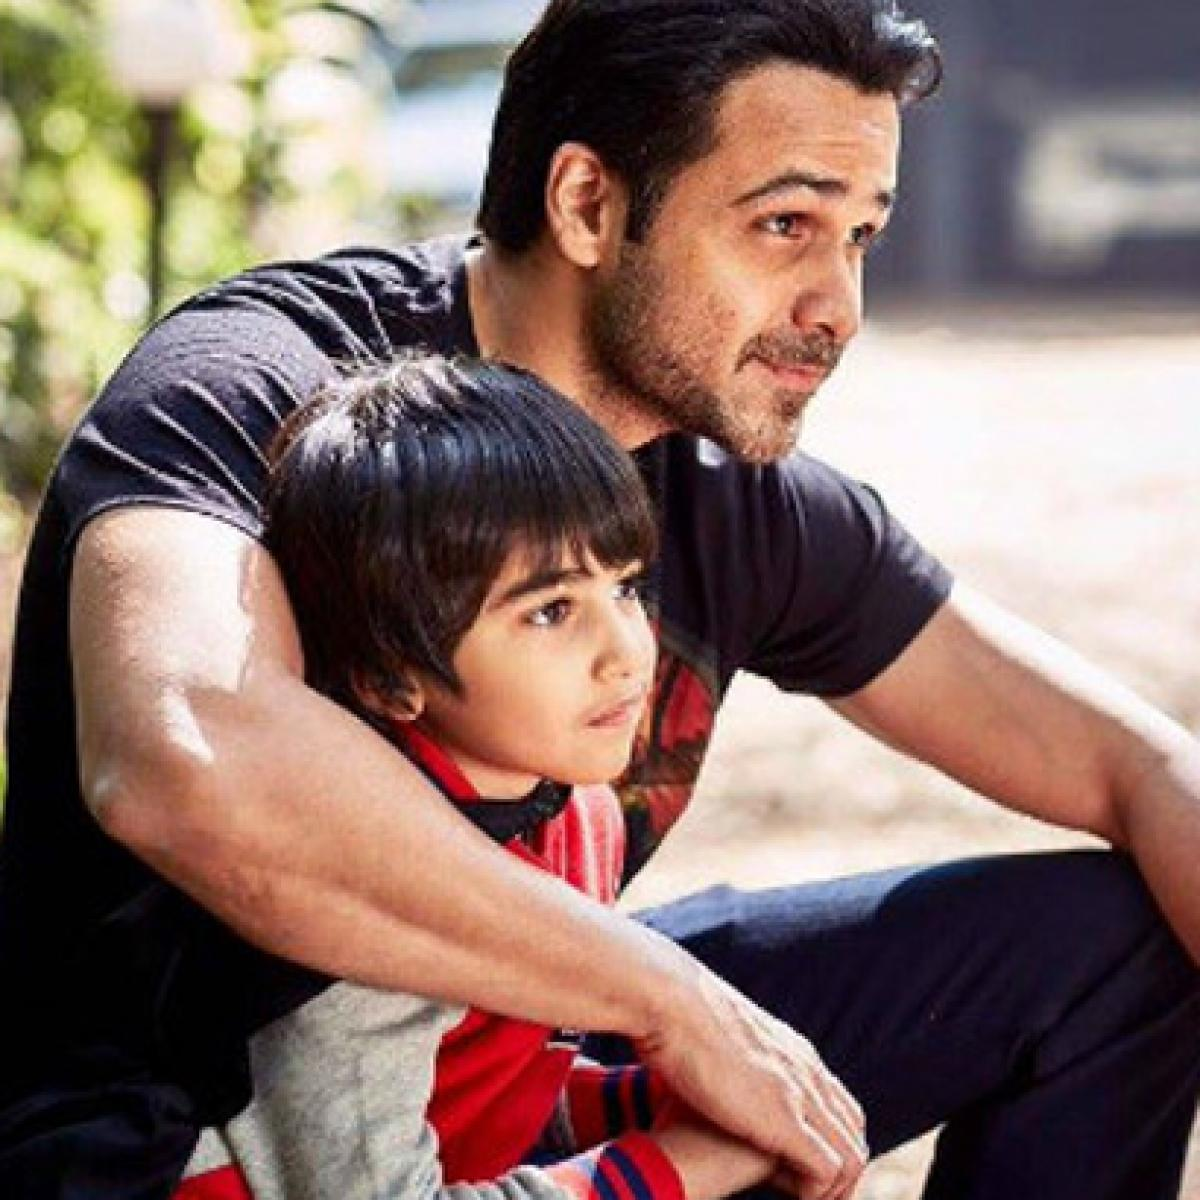 The Kiss of Life: How A Superhero and My Son Defeated Cancer: Emraan Hashmi